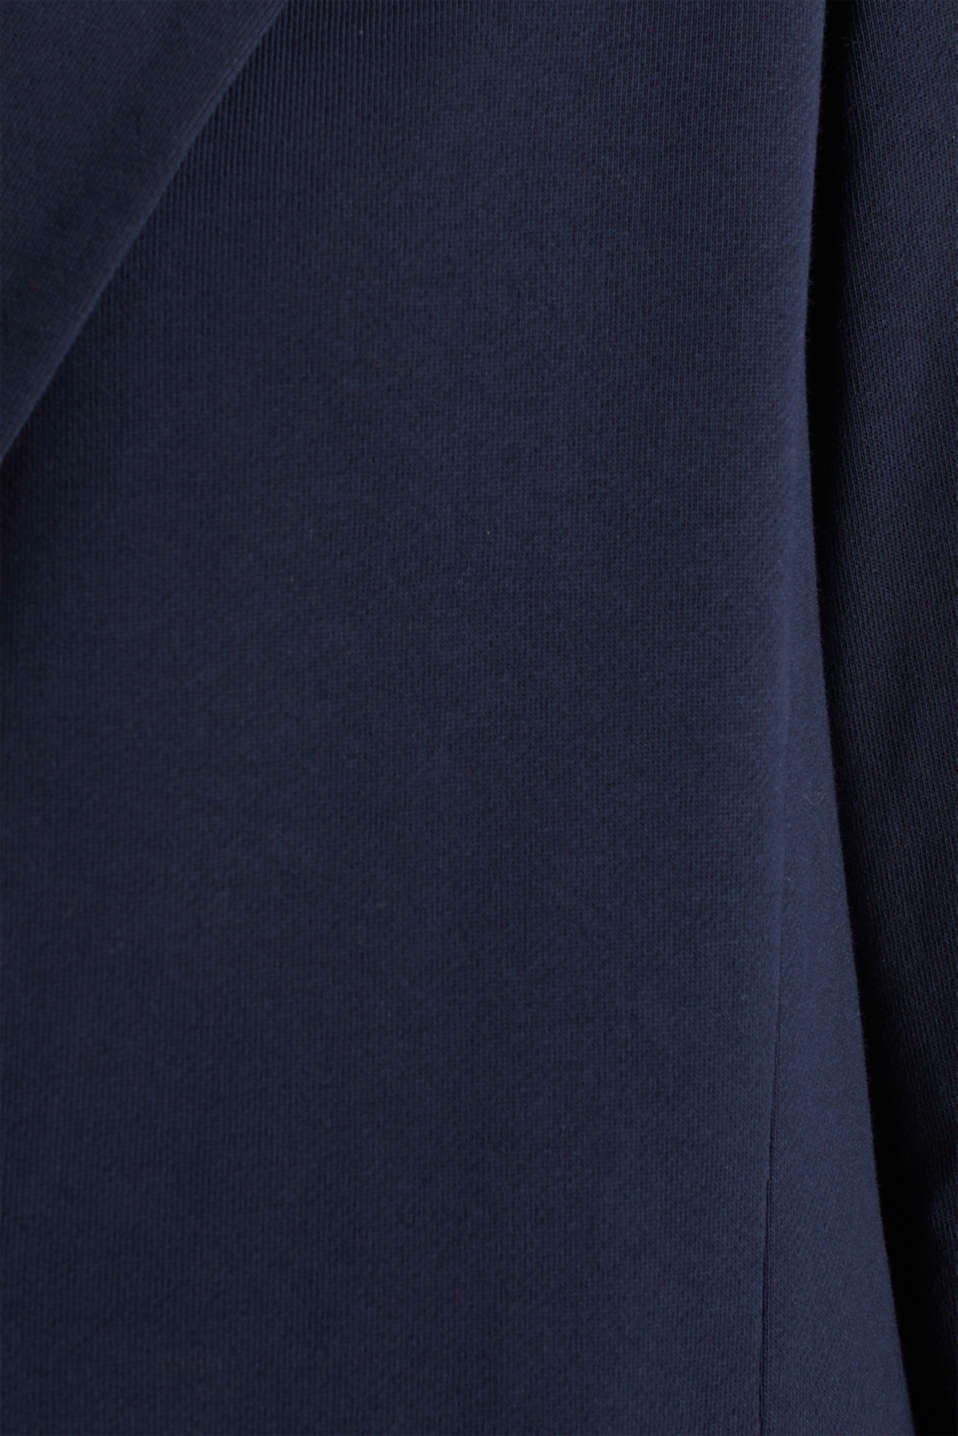 CURVY jersey coat with a striped lining, NAVY, detail image number 4